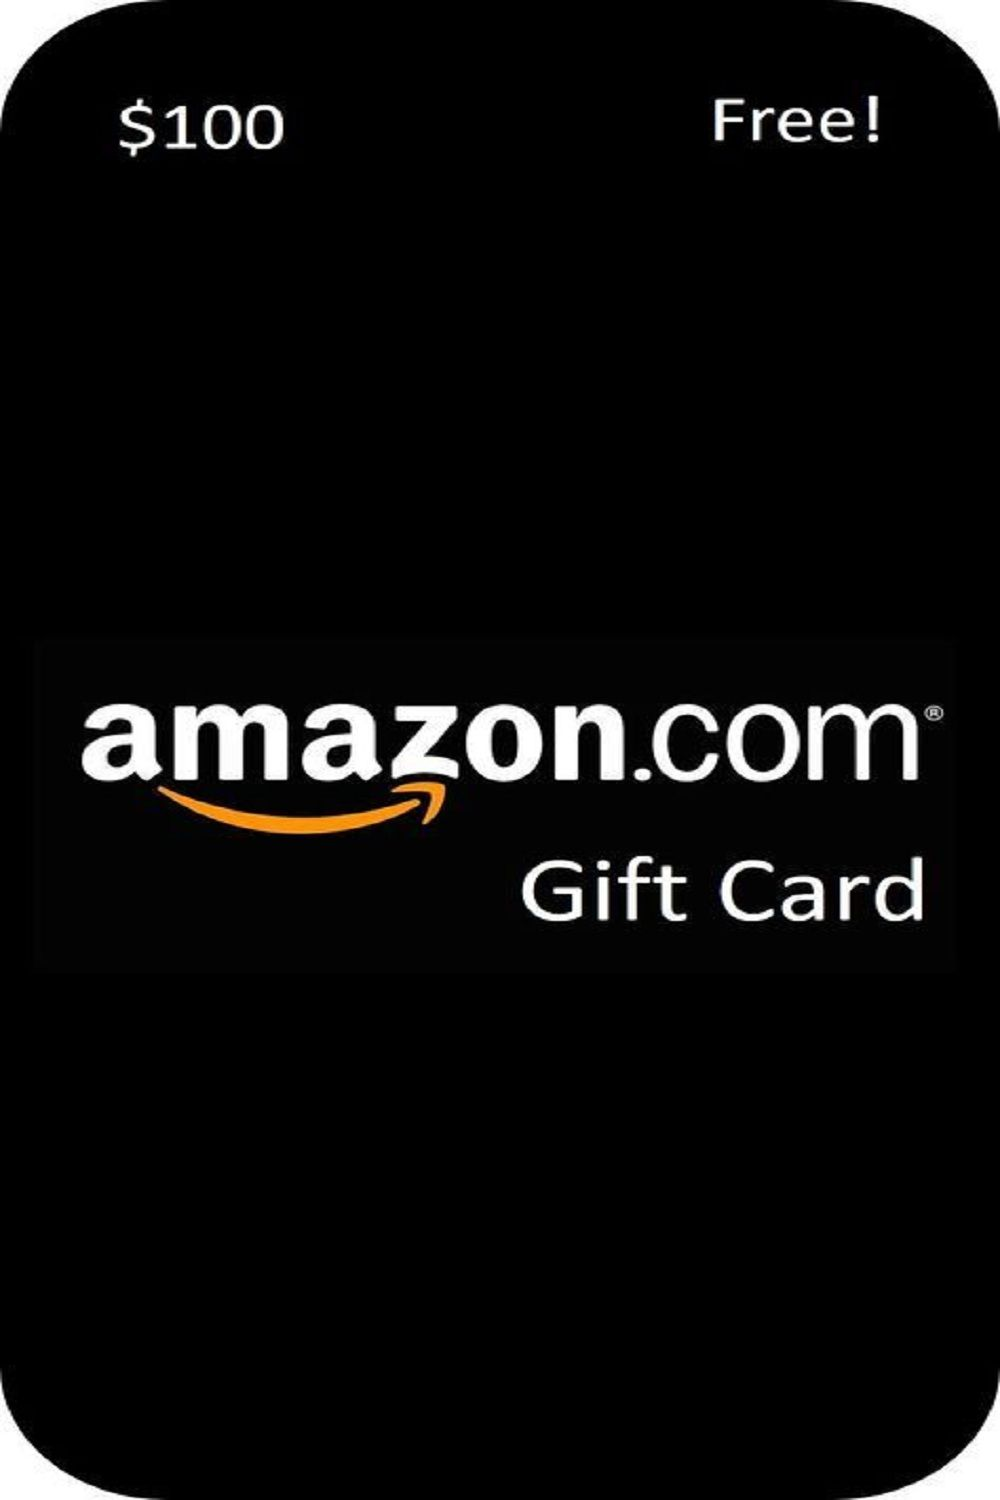 Enter To Win A Free Amazon Gift Card Free Gift Cards Online Amazon Gift Card Free Amazon Gift Cards